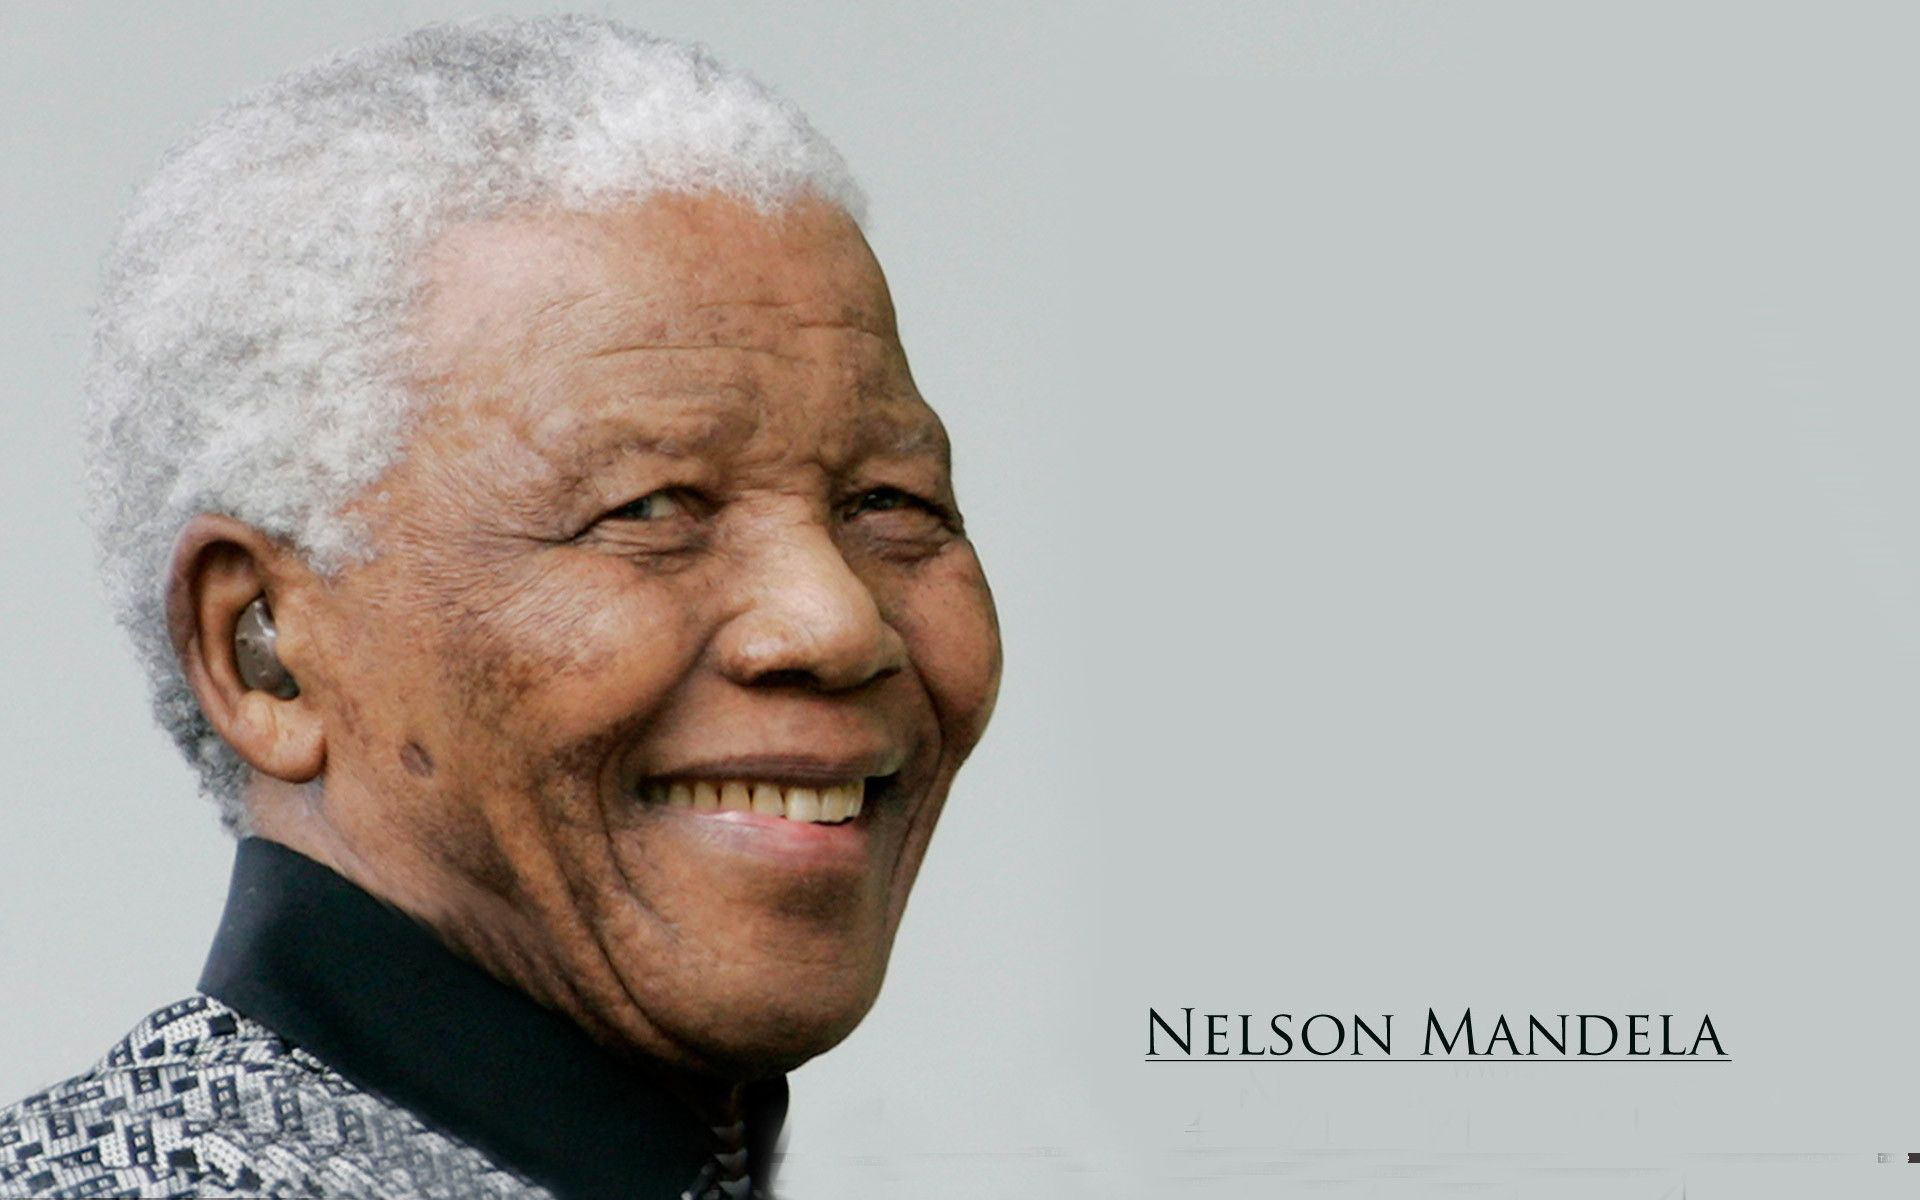 Pictures of the late nelson mandela Nelson Mandela 'proven' to be a member of the